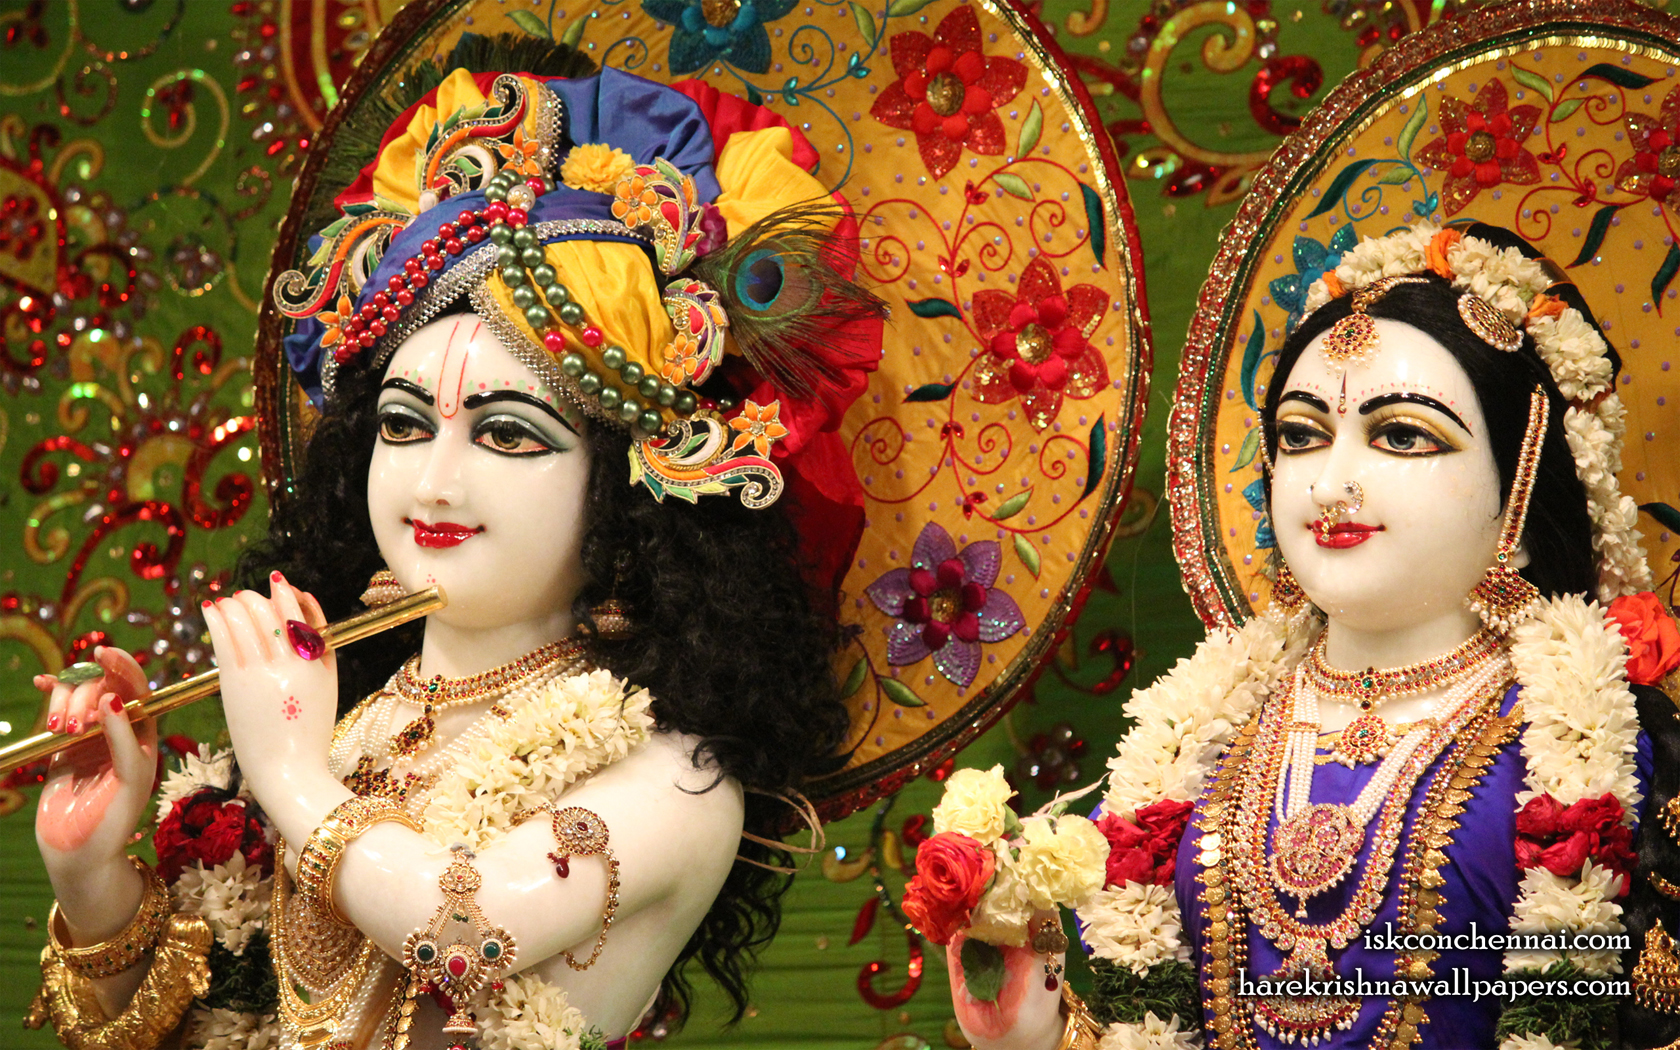 Sri Sri Radha Krishna Close up Wallpaper (011) Size 1680x1050 Download